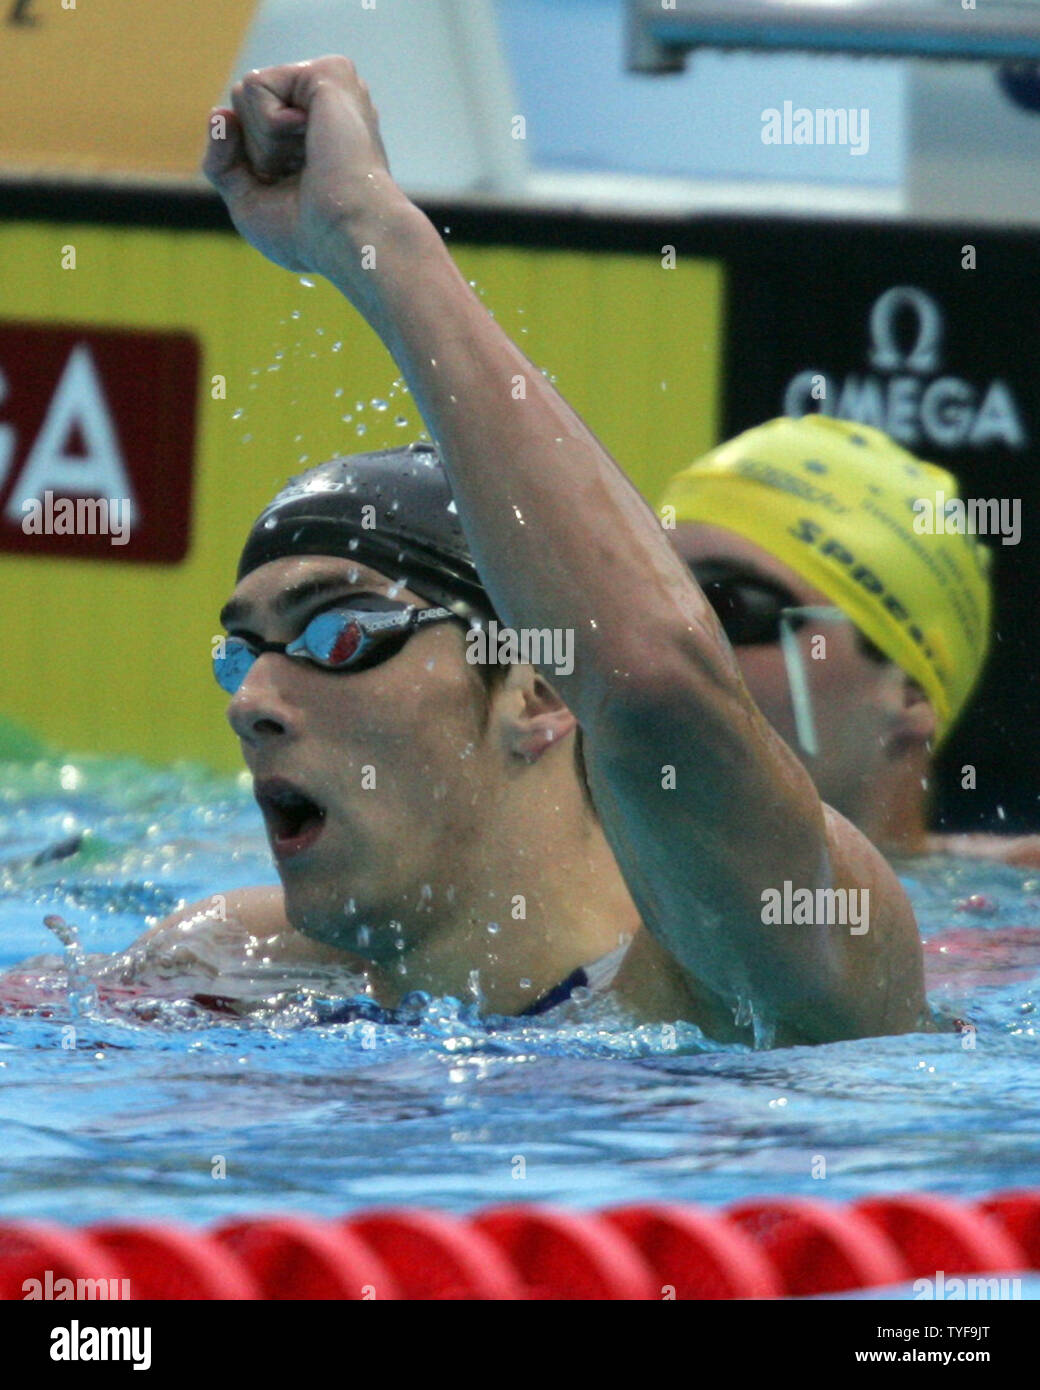 9bace822cd5 American swimming superstar Michael Phelps claims victory following the  final race in the men's 200-